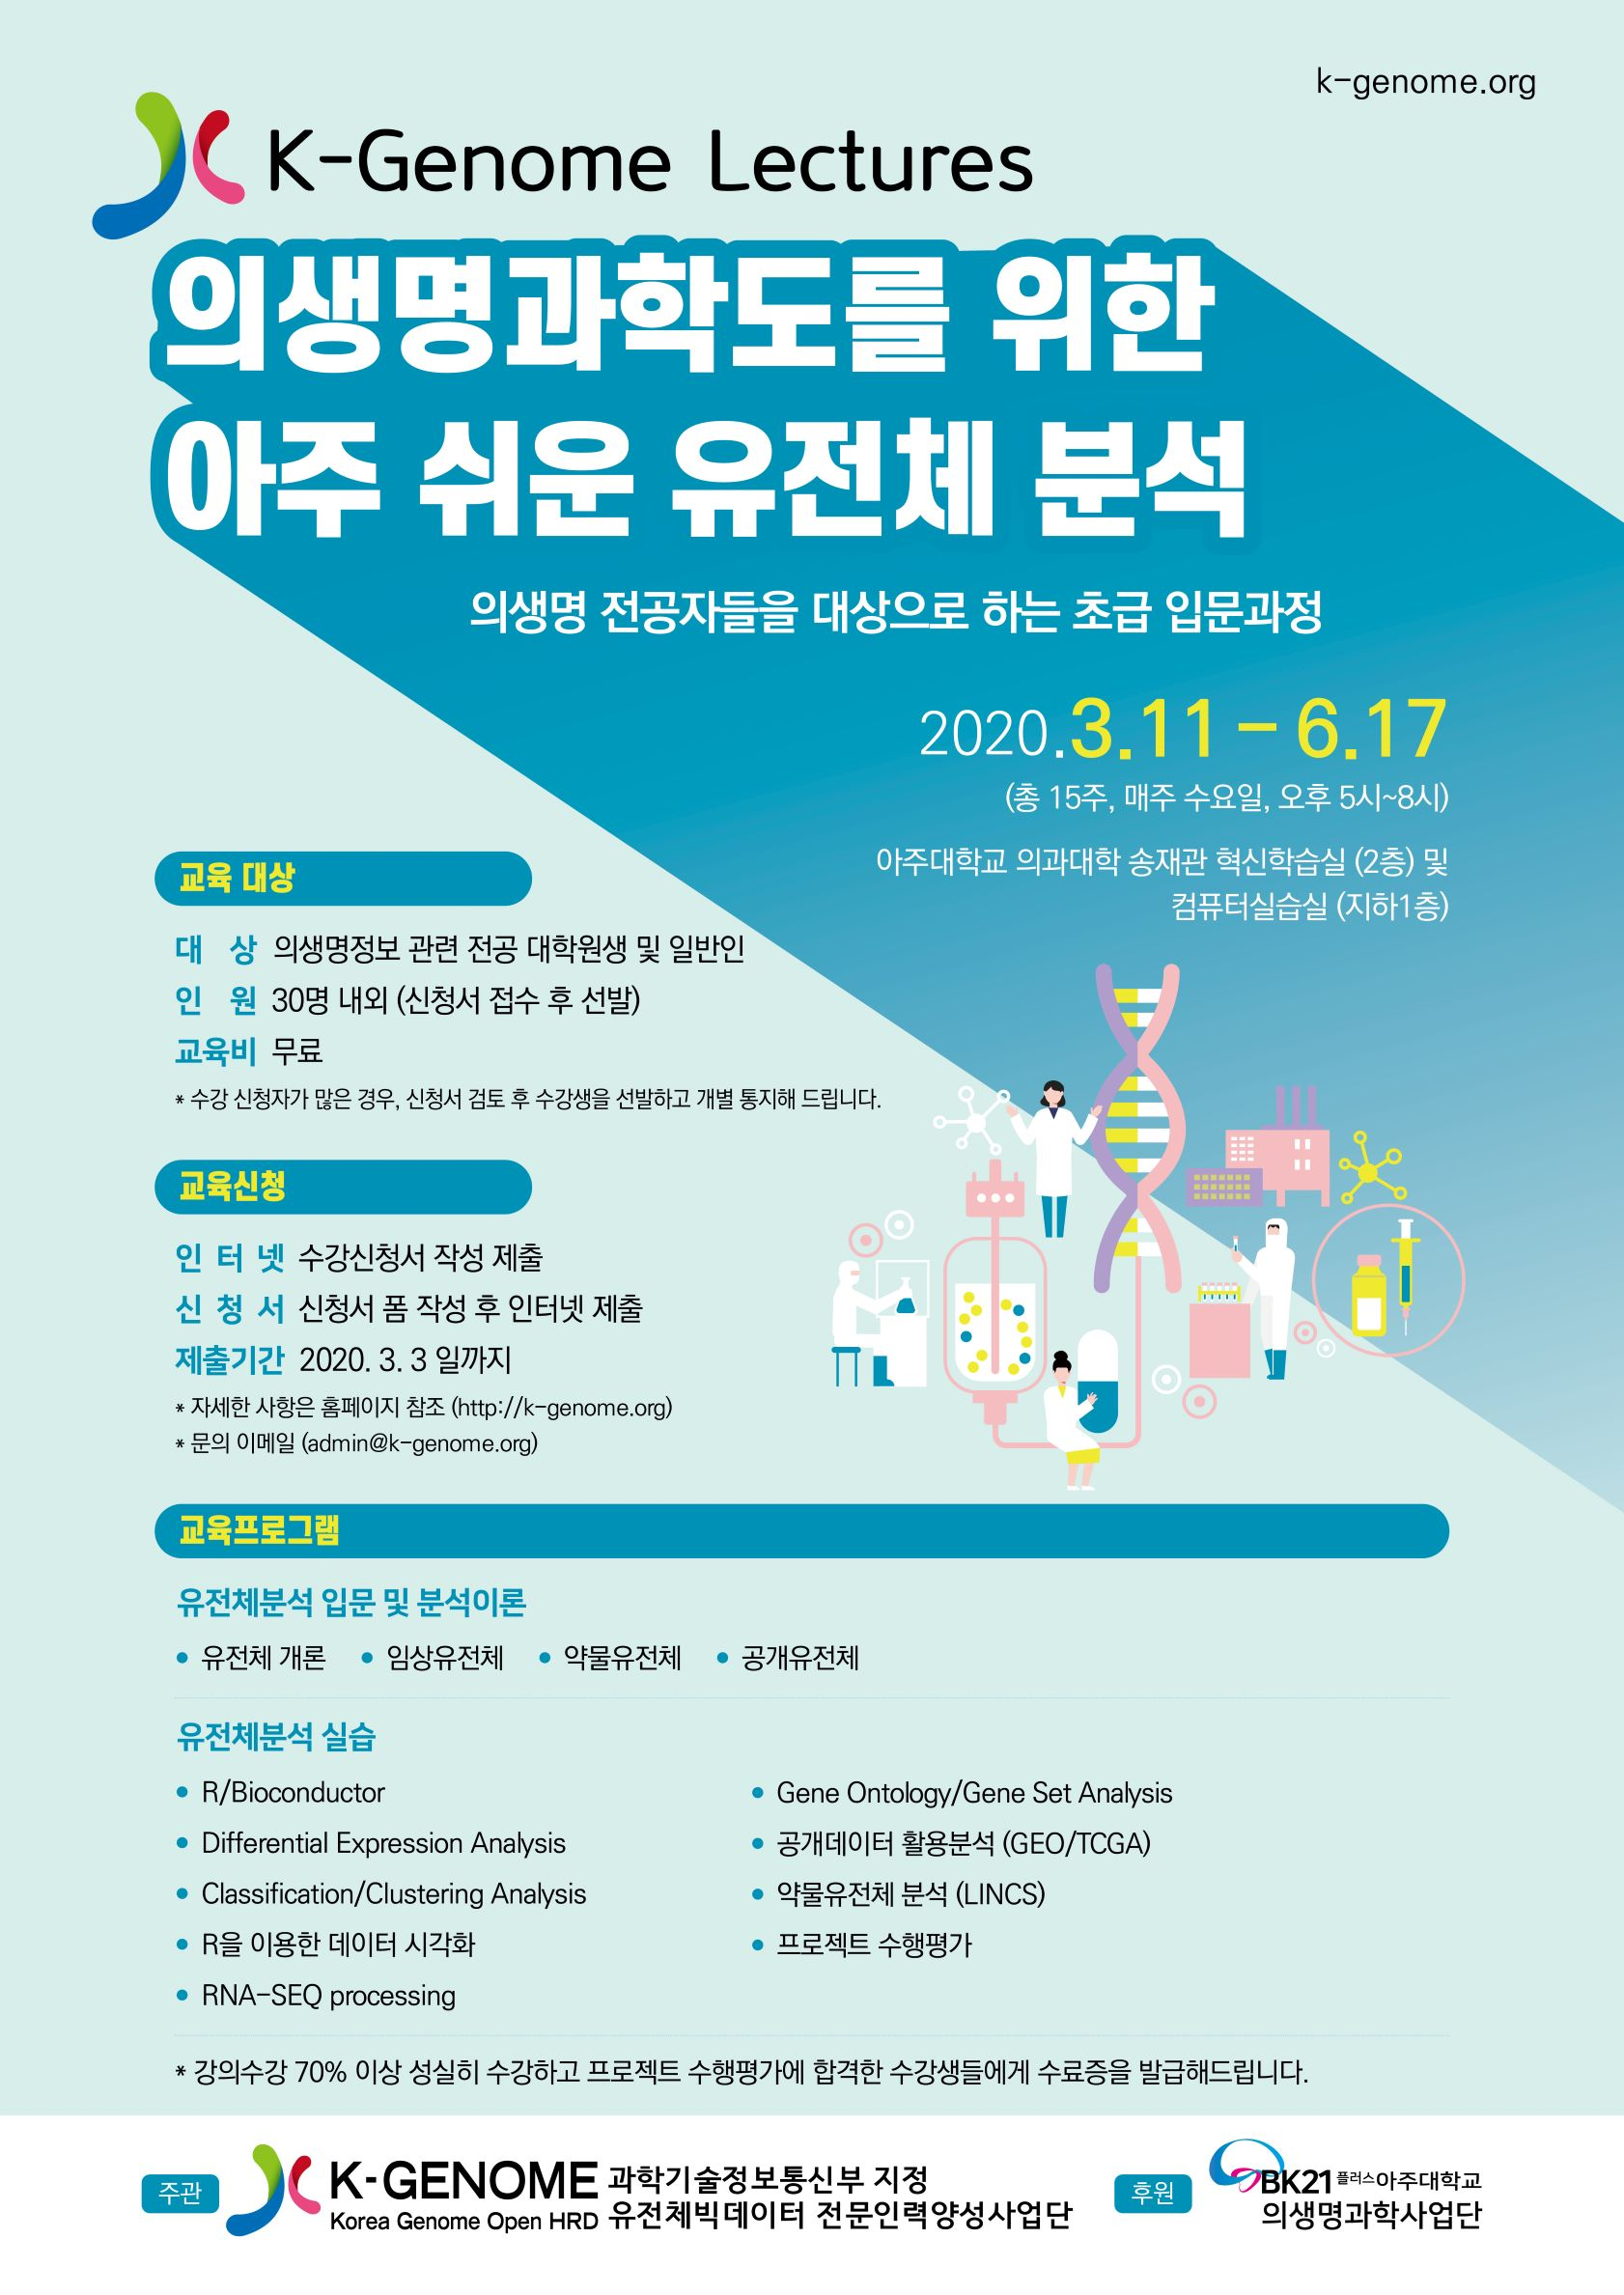 Ajou_K-Genome Lectures_최종본small.jpg